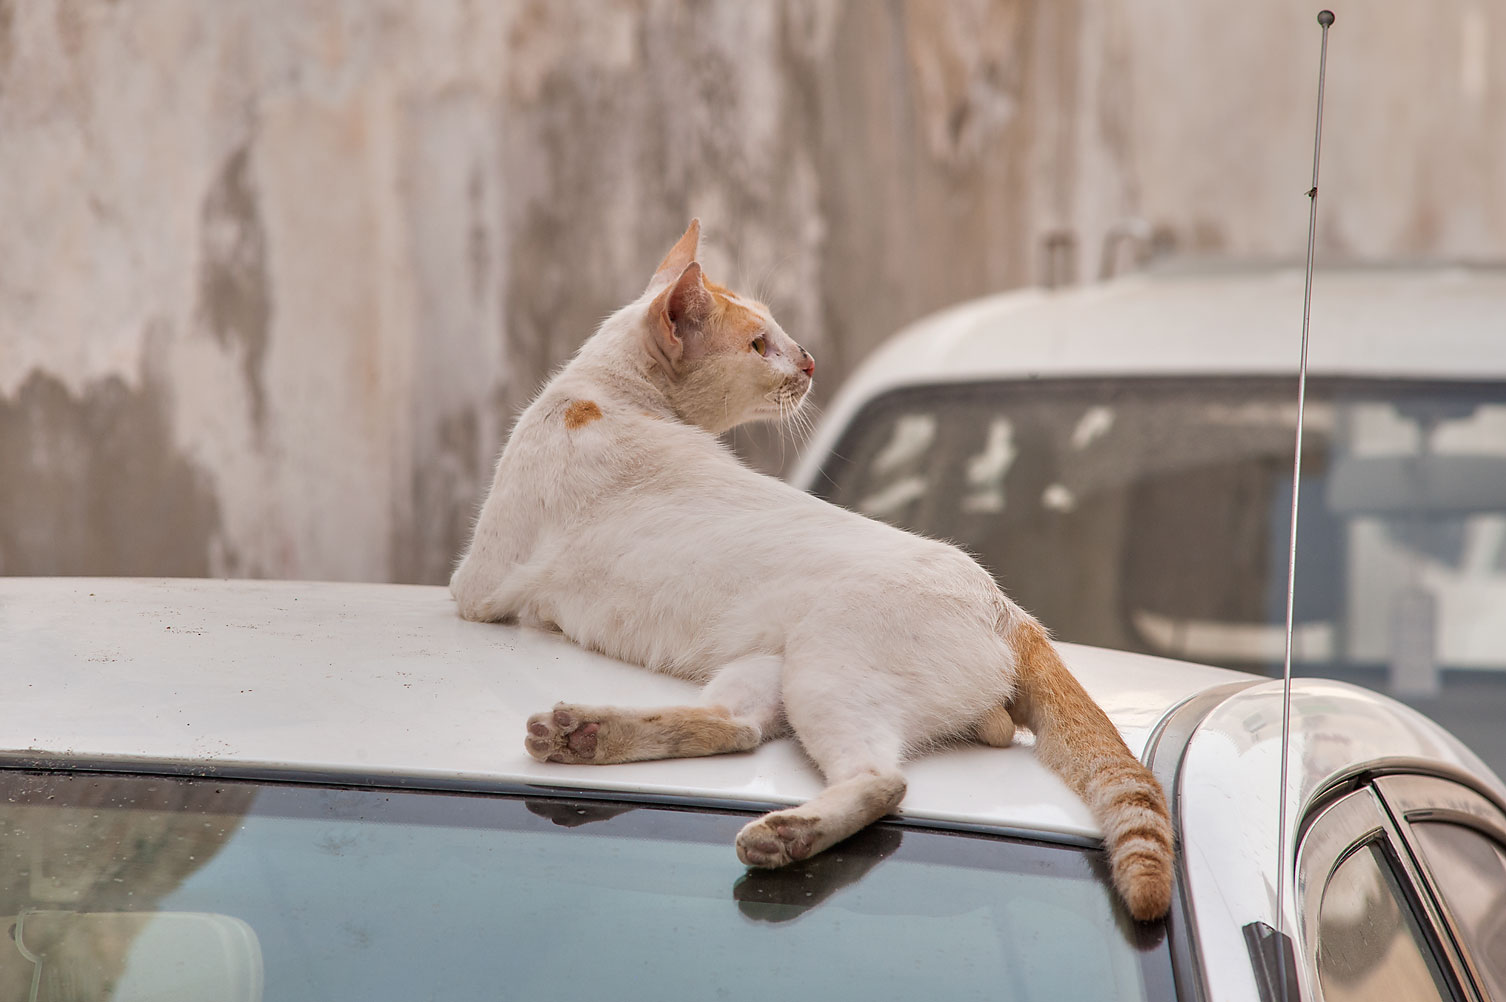 Street cat resting on a white car on Umm Wishad St. in Musheirib area. Doha, Qatar